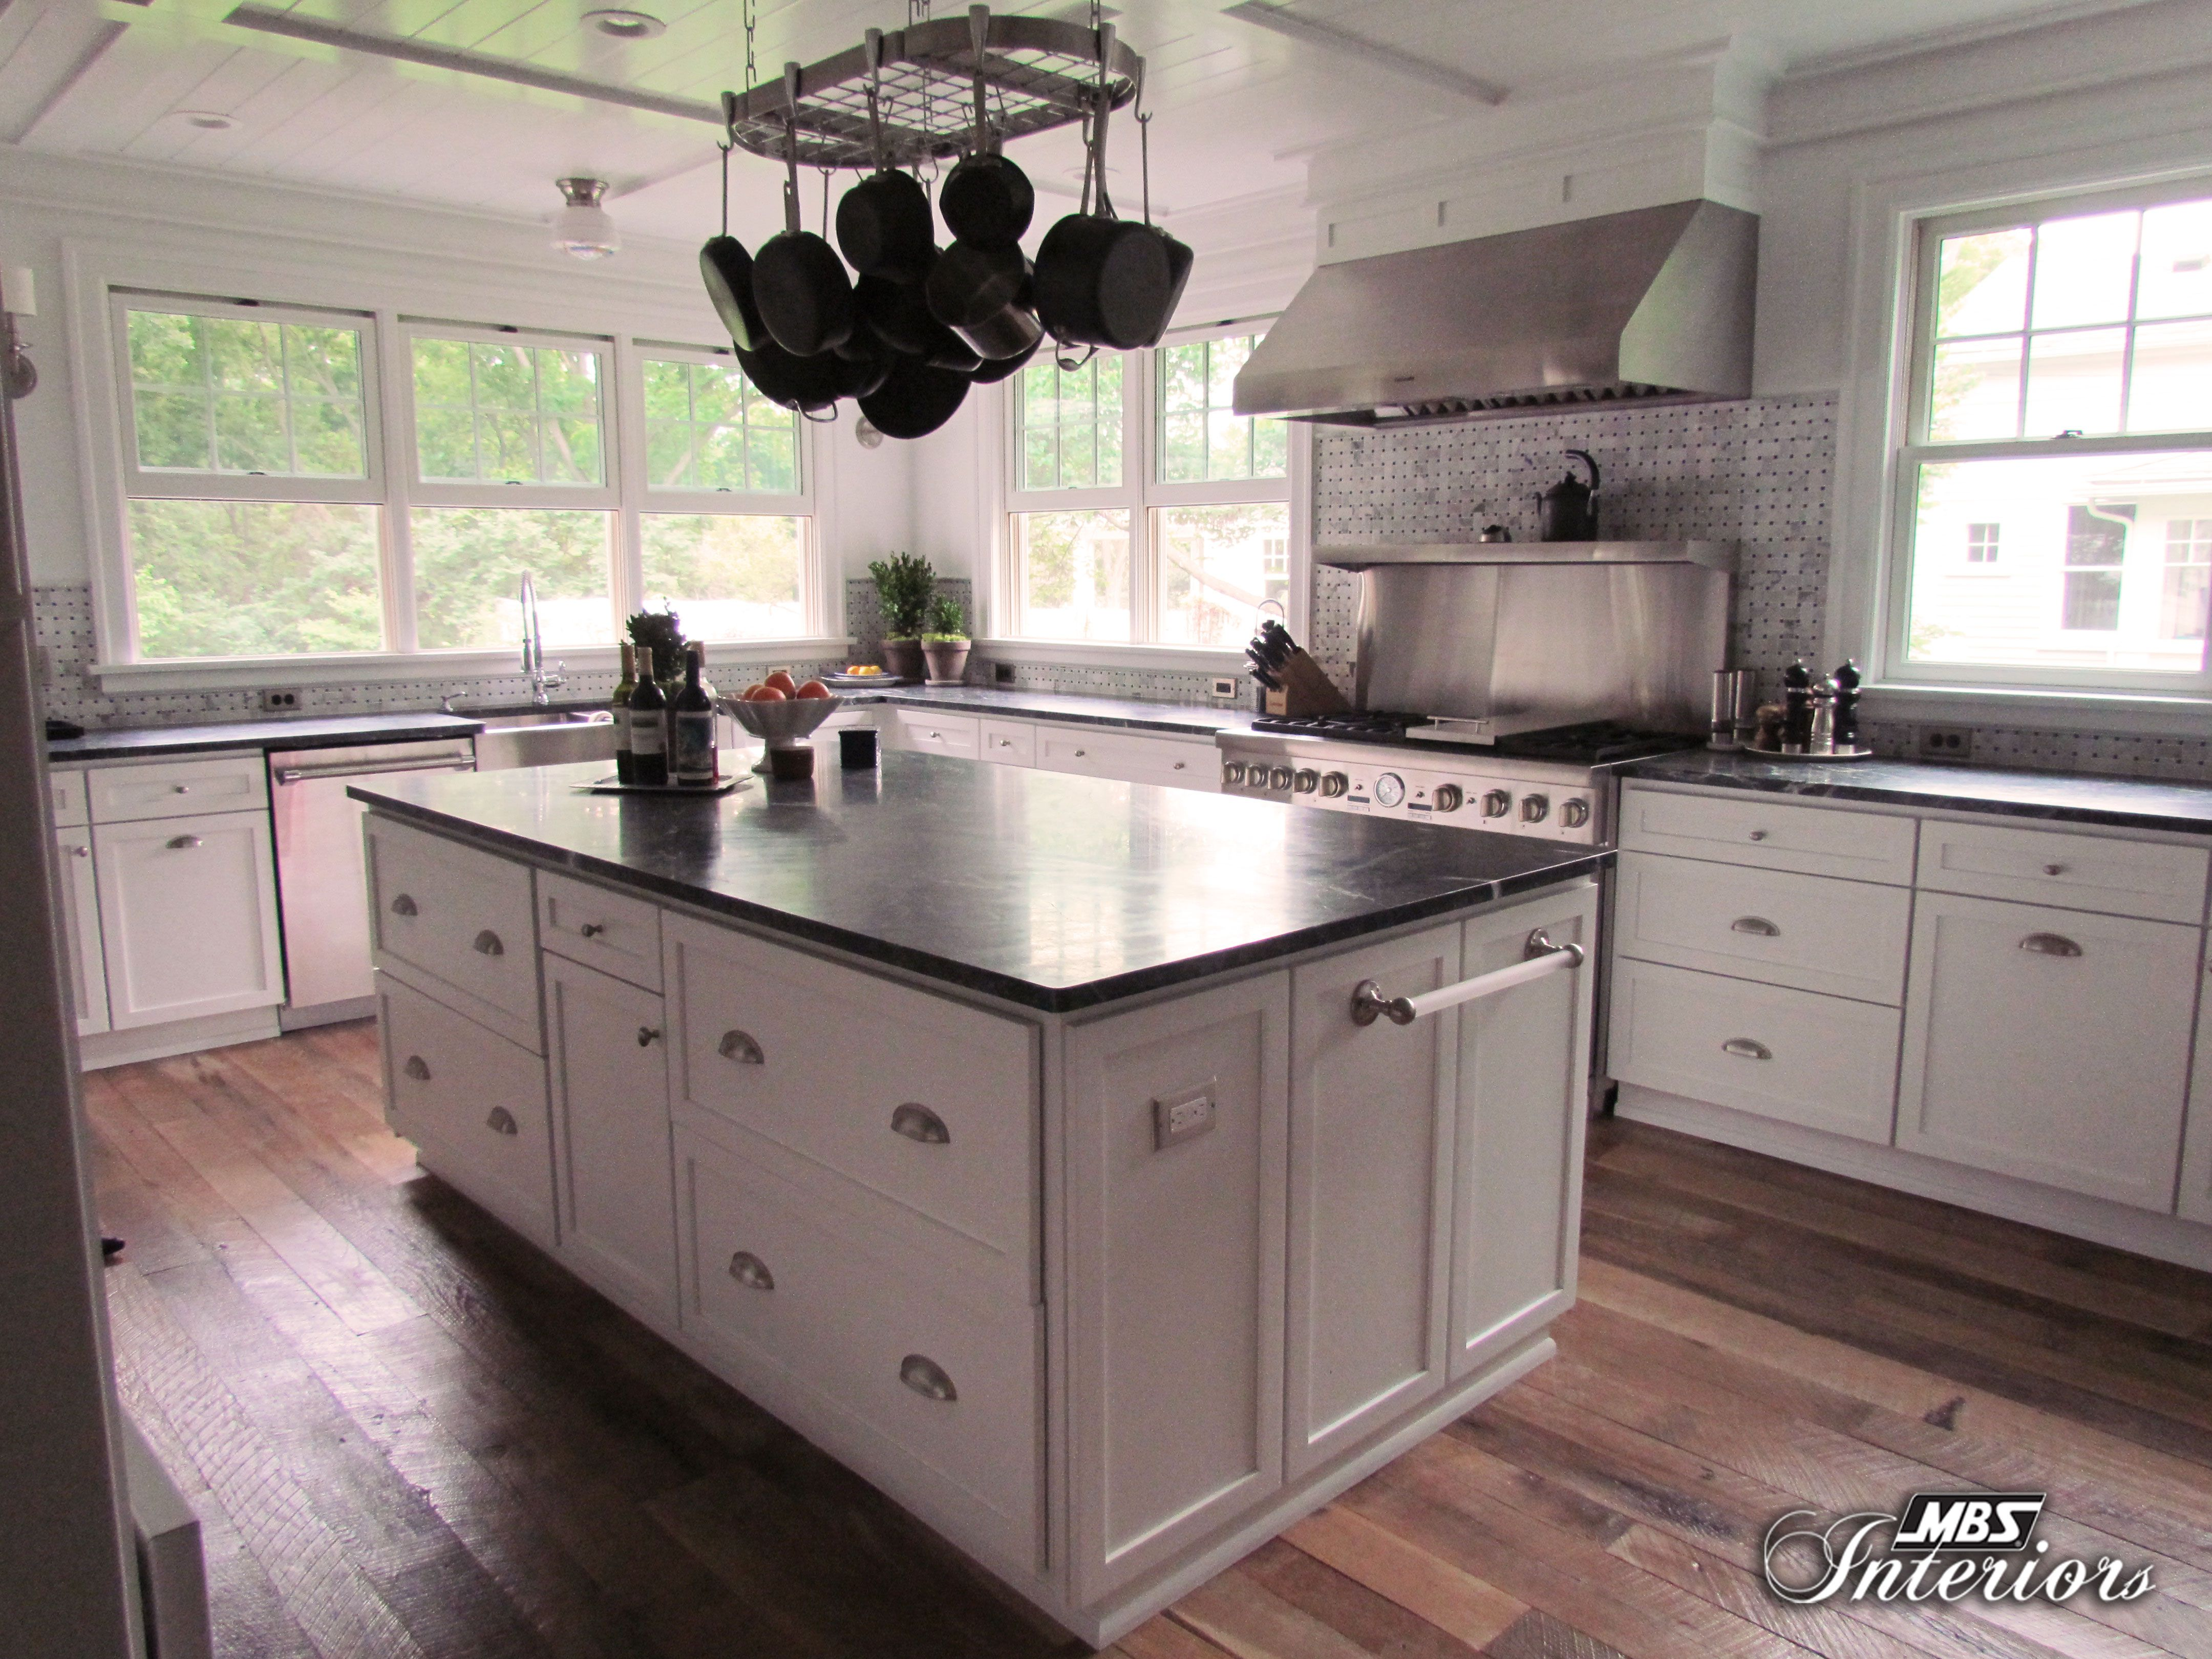 Homeowners Remodeled A Farmhouse Kitchen In Toledo Ohio And The Result Is Wow The Kitchen Now Has A Fresh Airy Look With Pl Kitchen Interior Home Kitchens